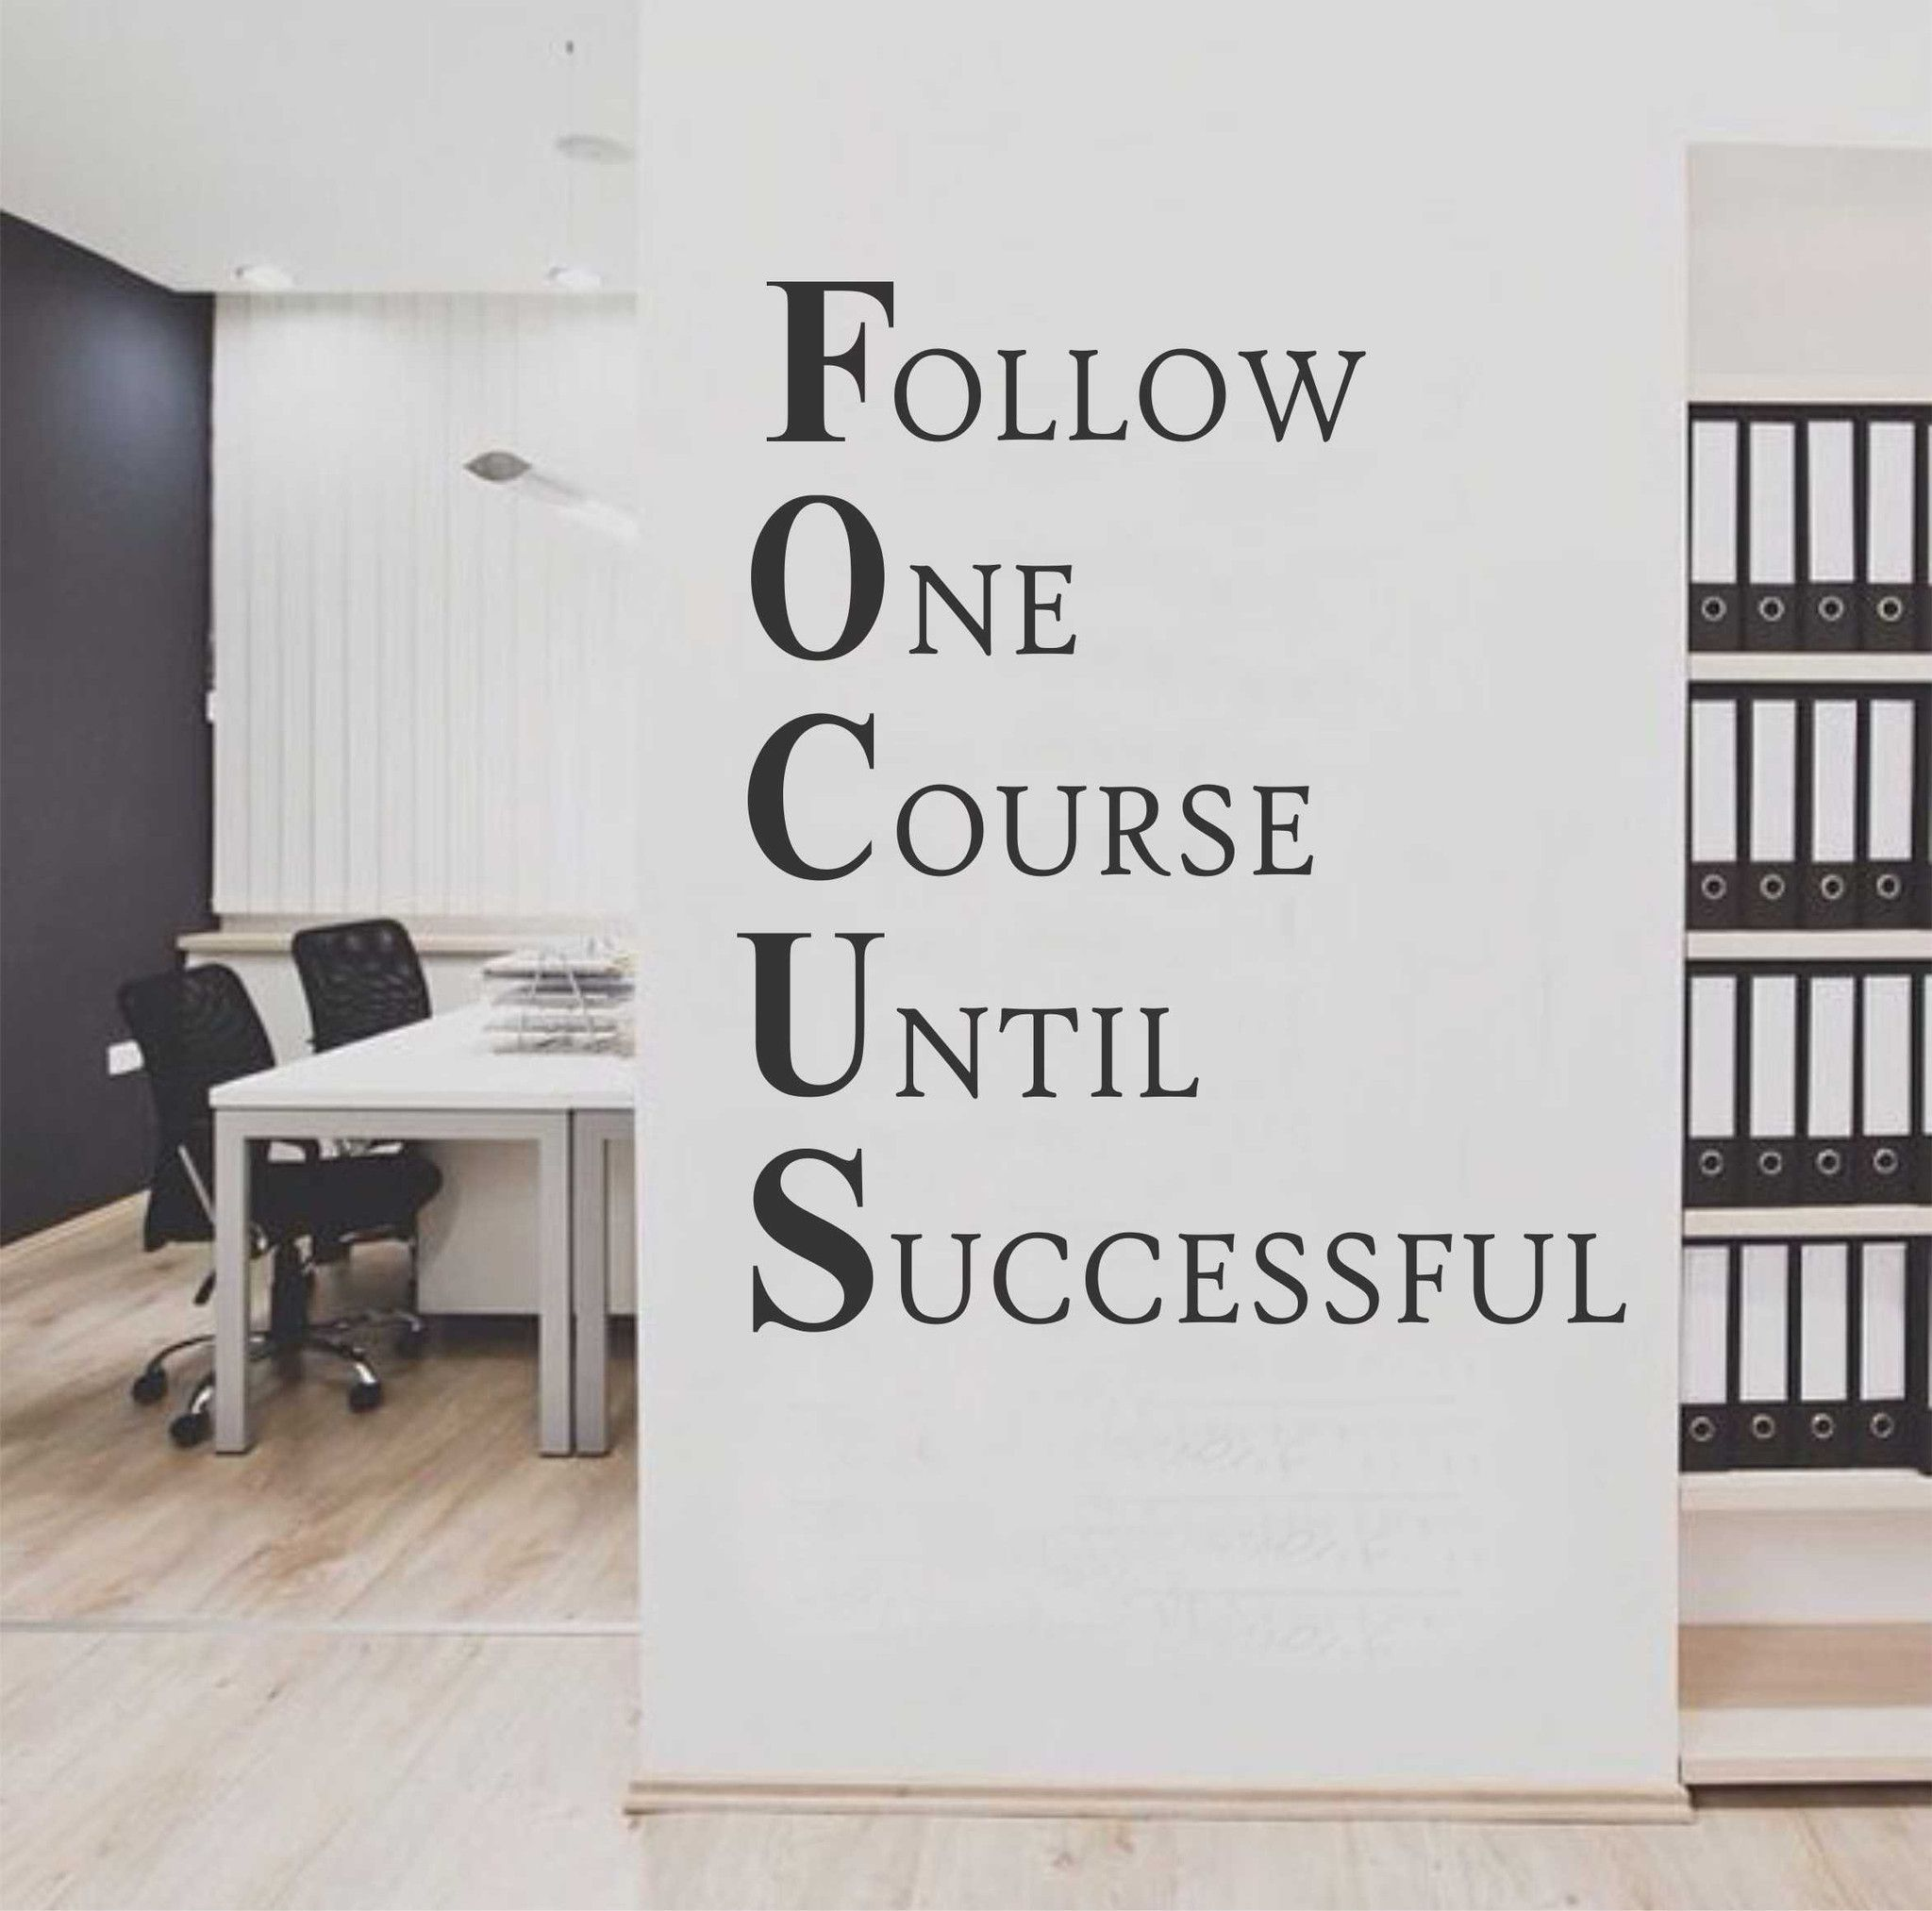 Inspirational Quotes Office Work: Focus Workplace Definition Quote